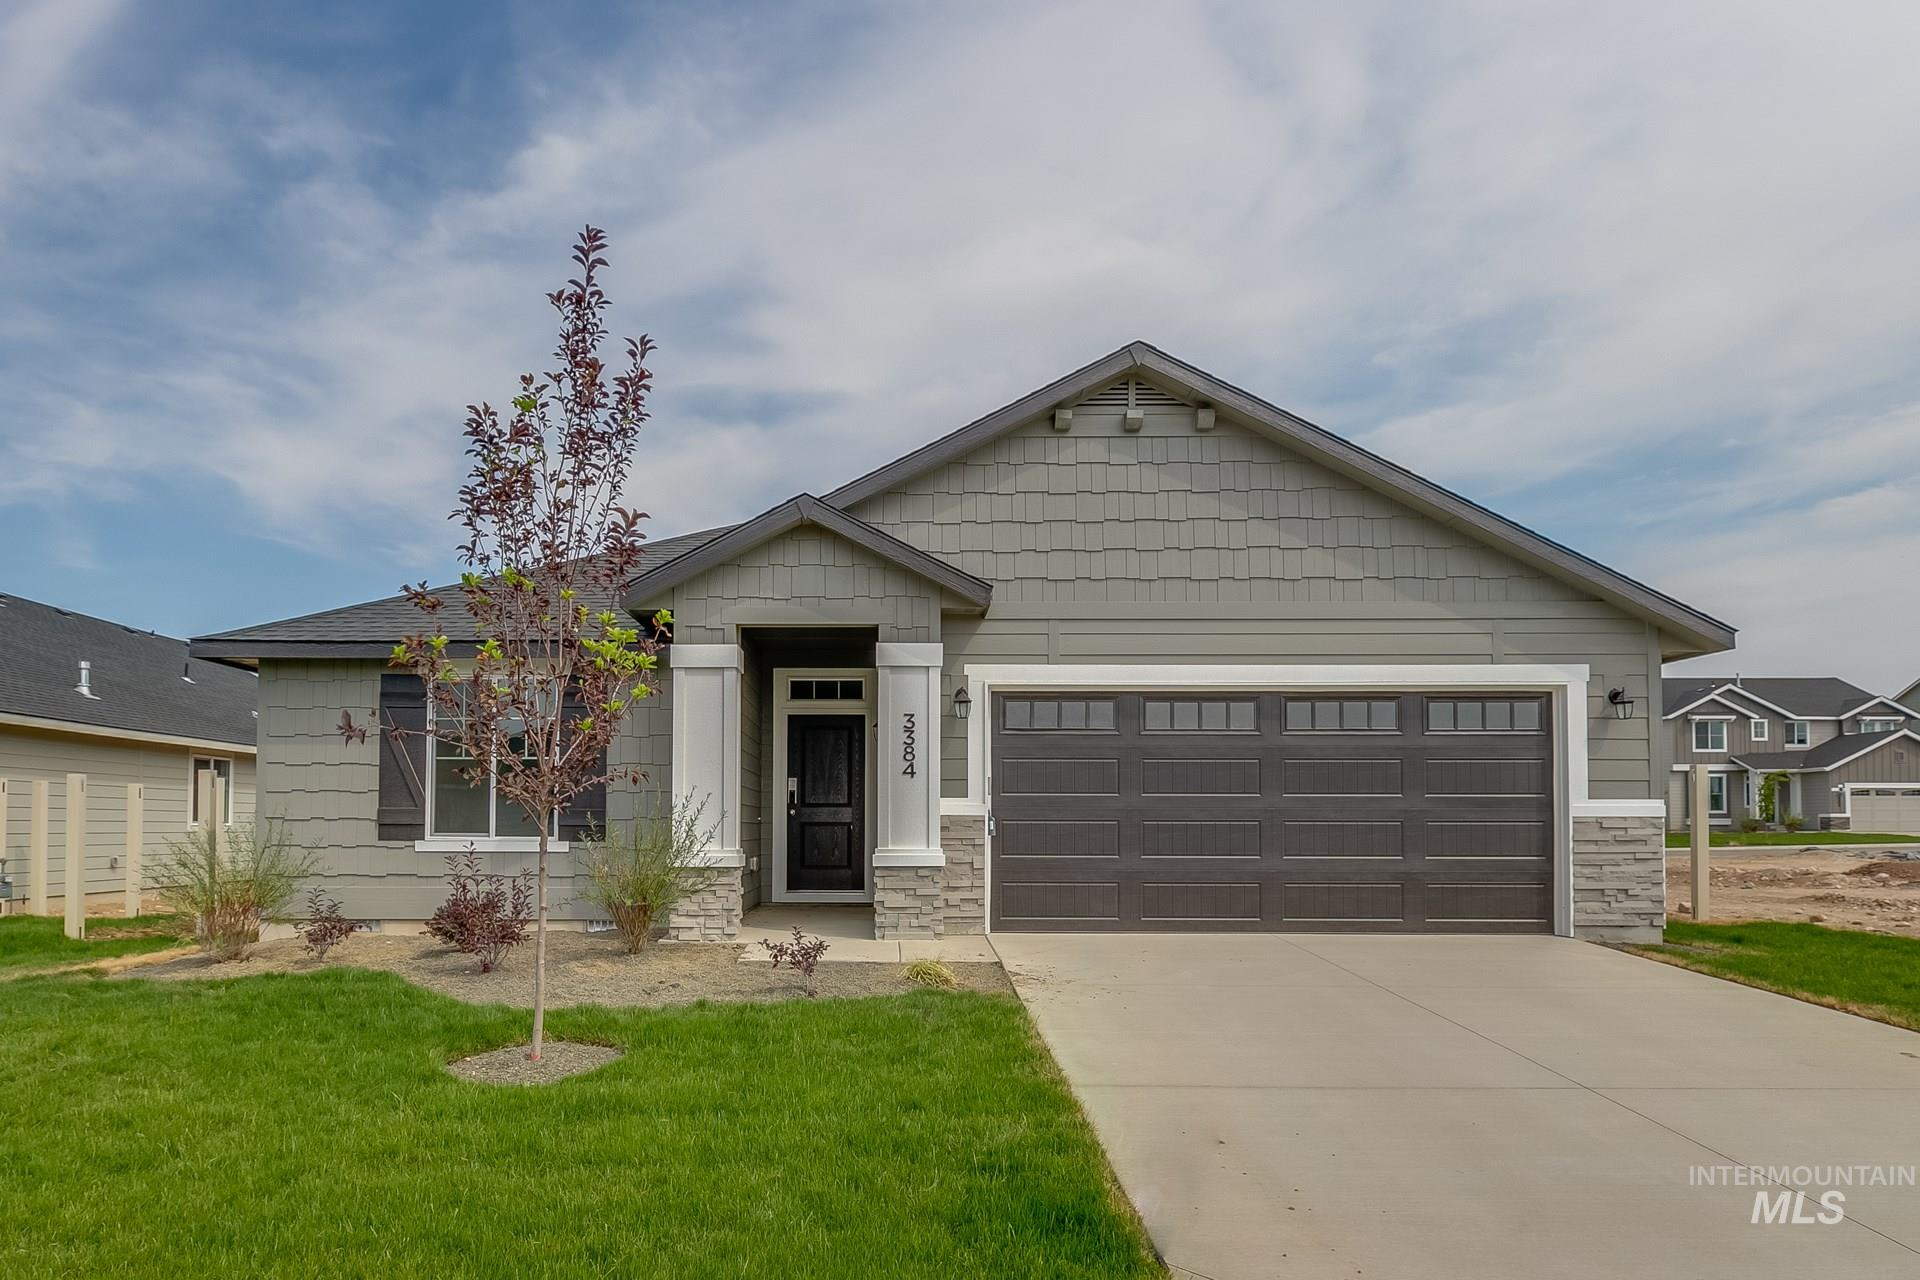 Photo for 915 N Bowknot Lake Ave, Star, ID 83669 (MLS # 98776197)